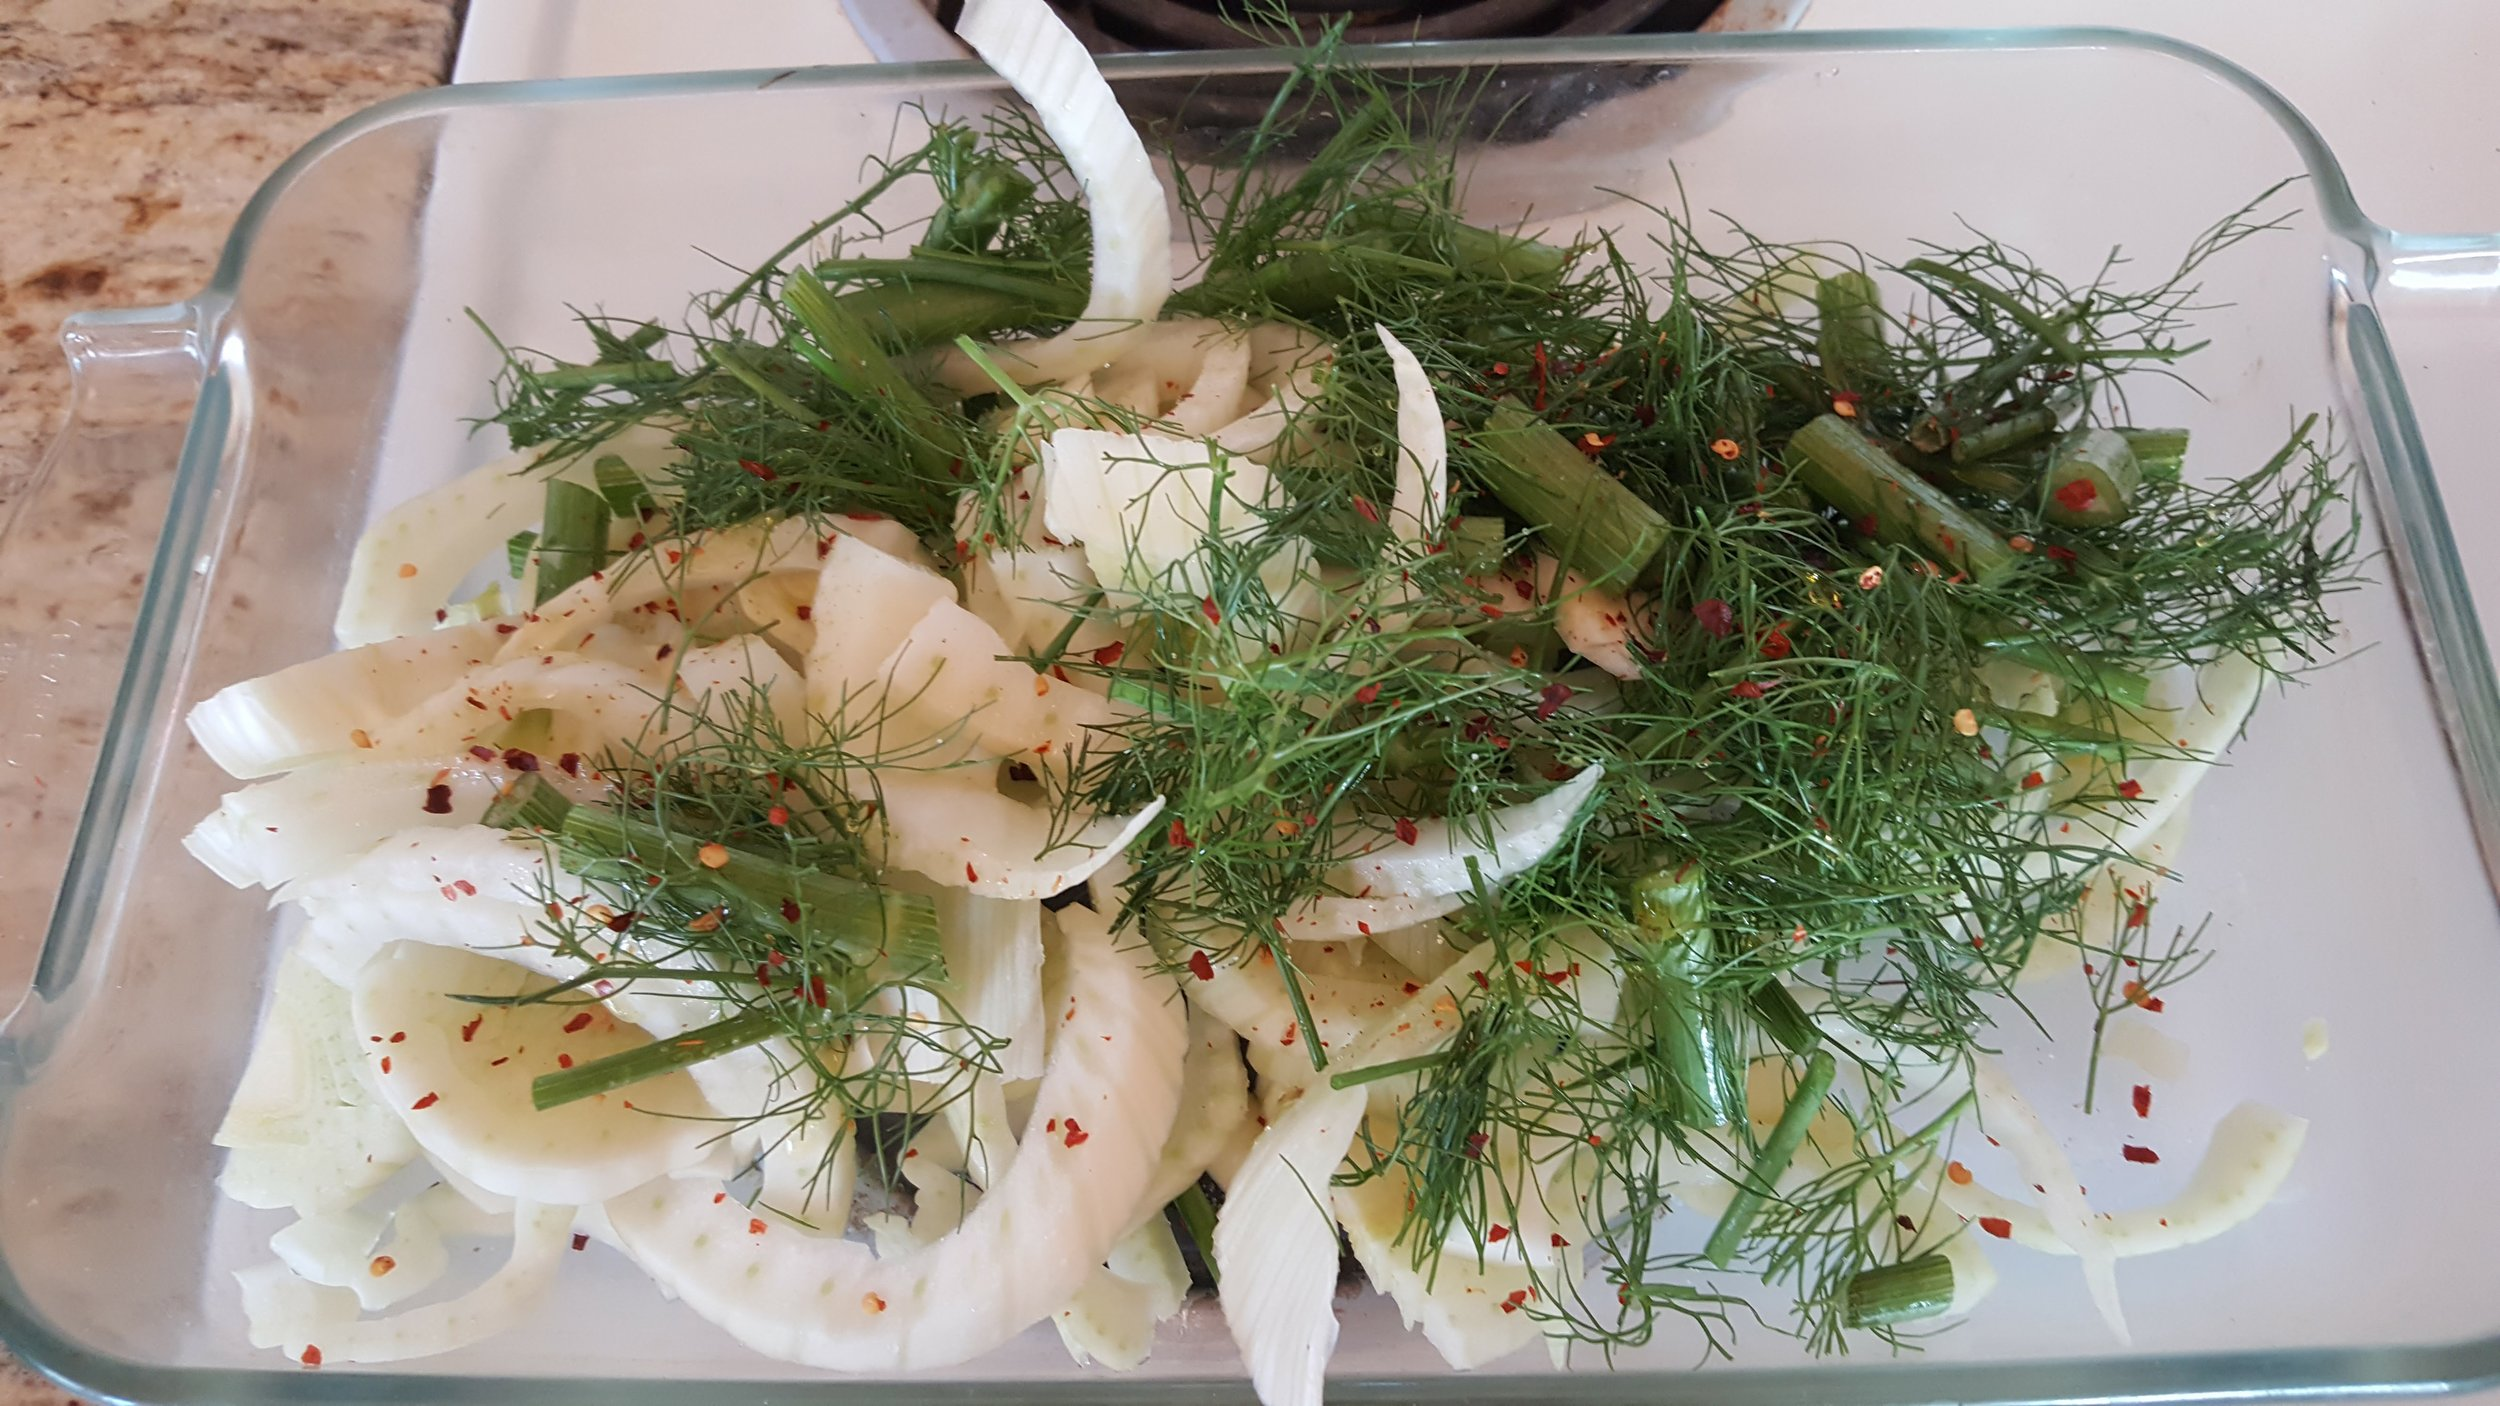 Roasted fennel with chili flakes. It takes about 45 minutes in the oven @ 400 degrees. You can even modify this with other seasoning if you wish.